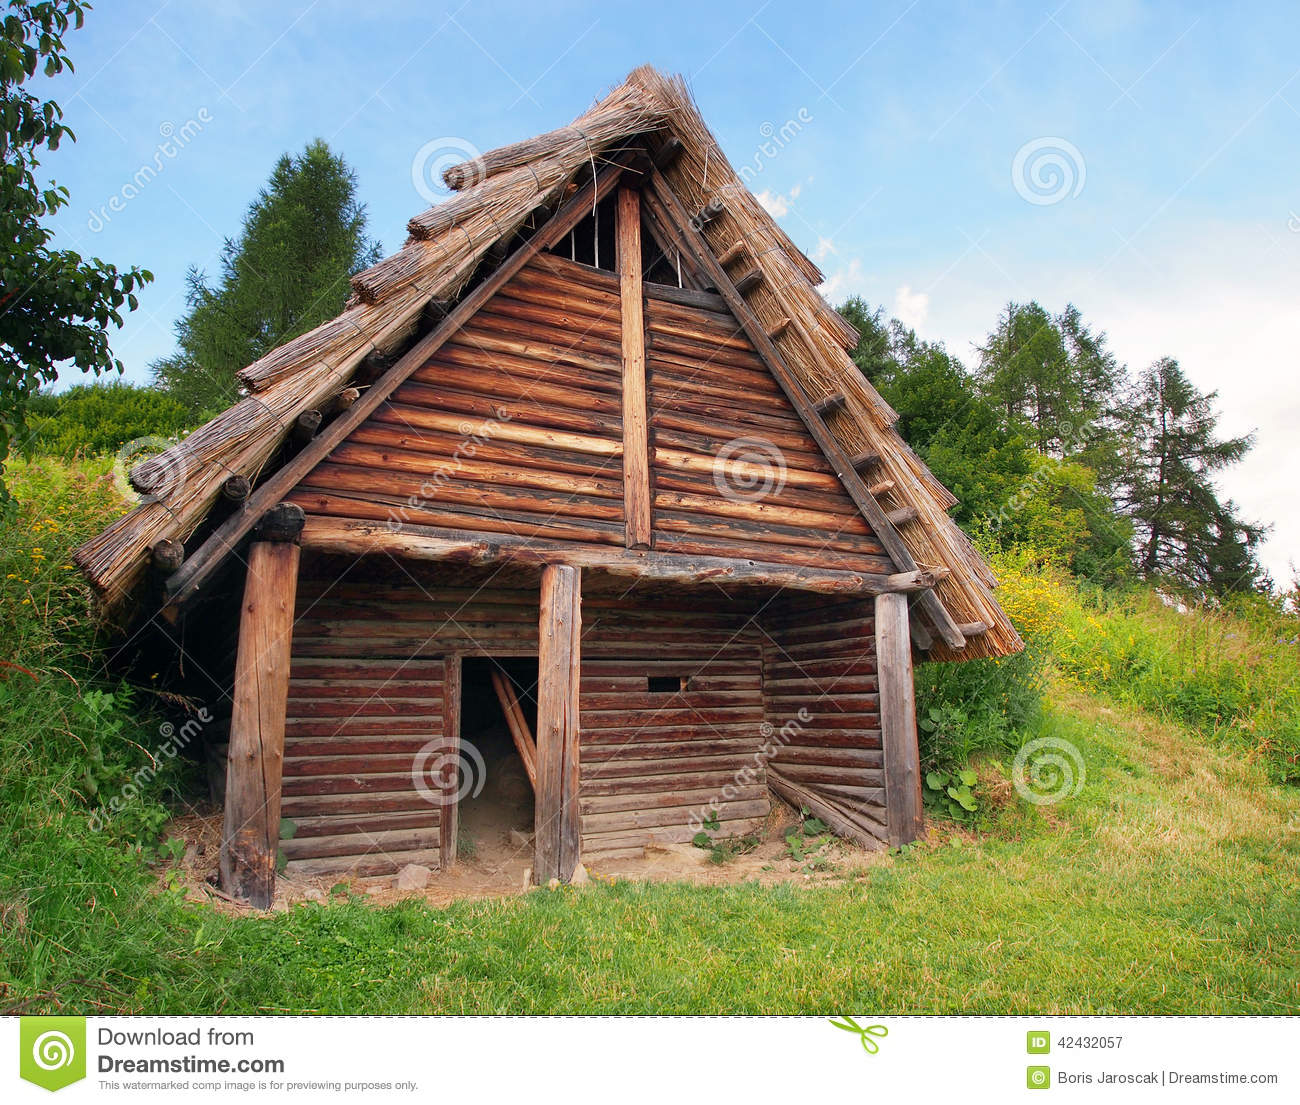 a celtic log house havranok slovakia stock image image 42432057. Black Bedroom Furniture Sets. Home Design Ideas